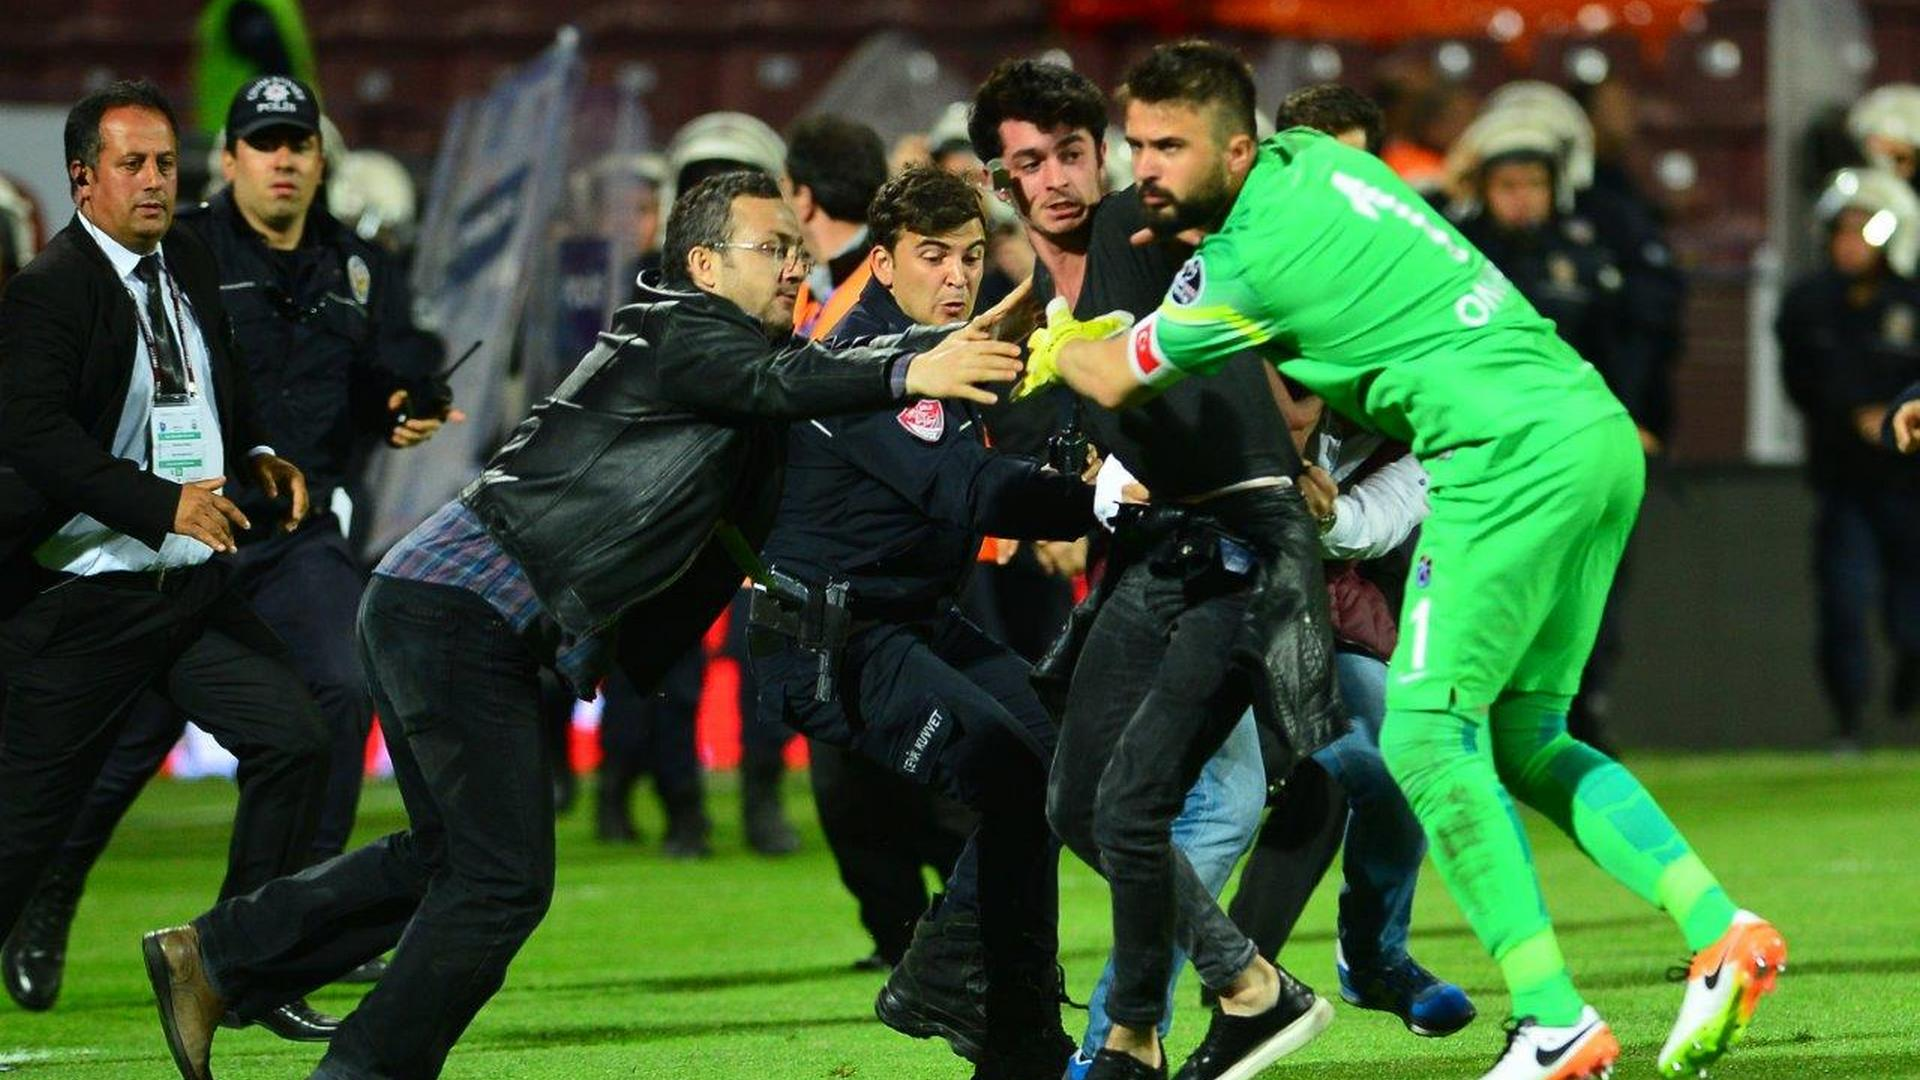 Fans Invade Pitch, Beat up Referee in Turkey [SEE PHOTOS]